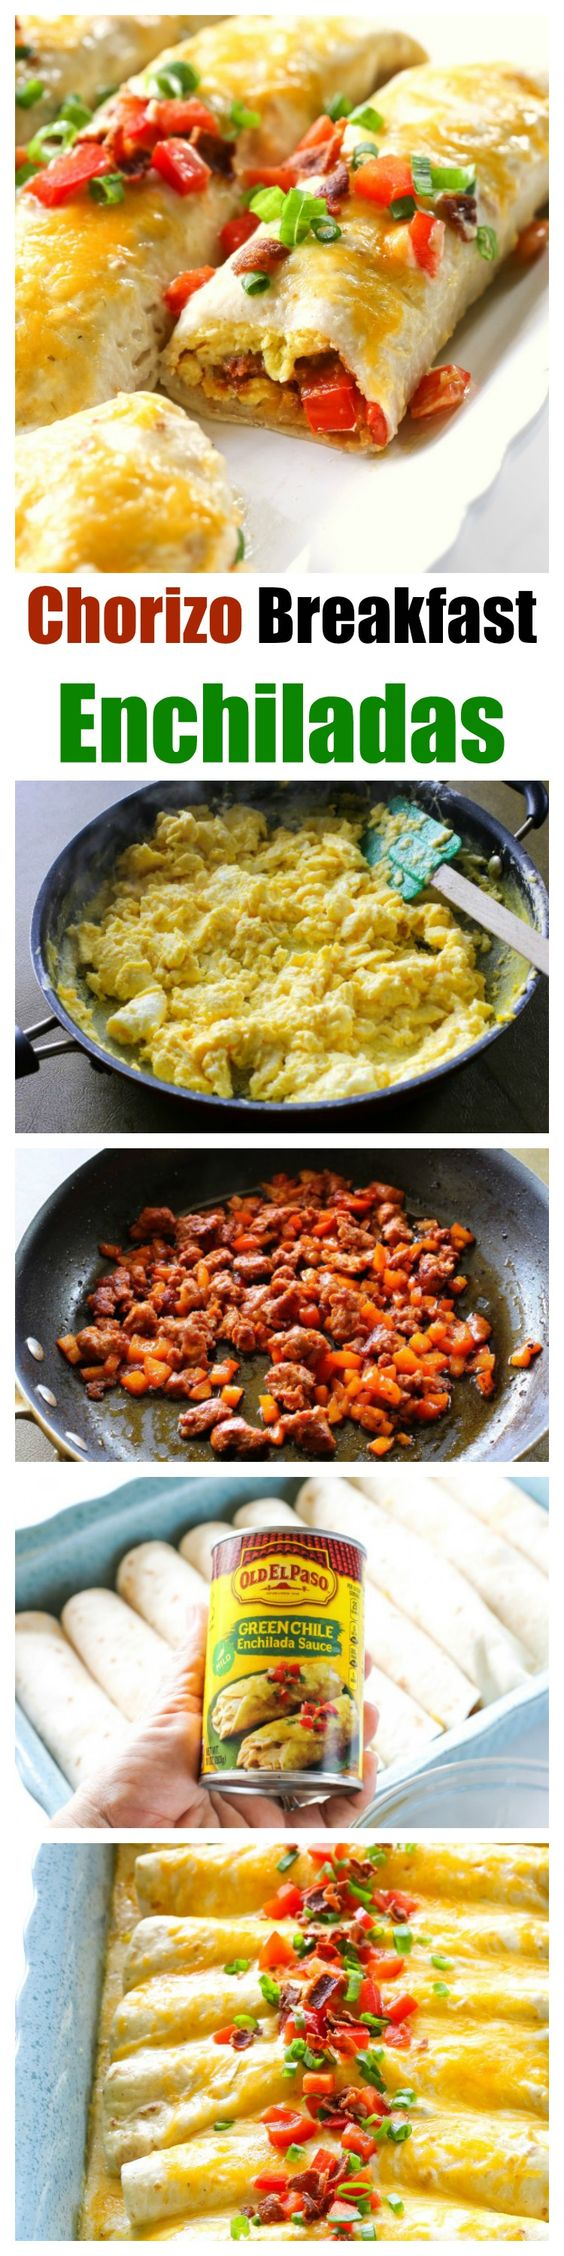 Chorizo Breakfast Enchiladas | Recipe | Eggs, Bacon and Brown